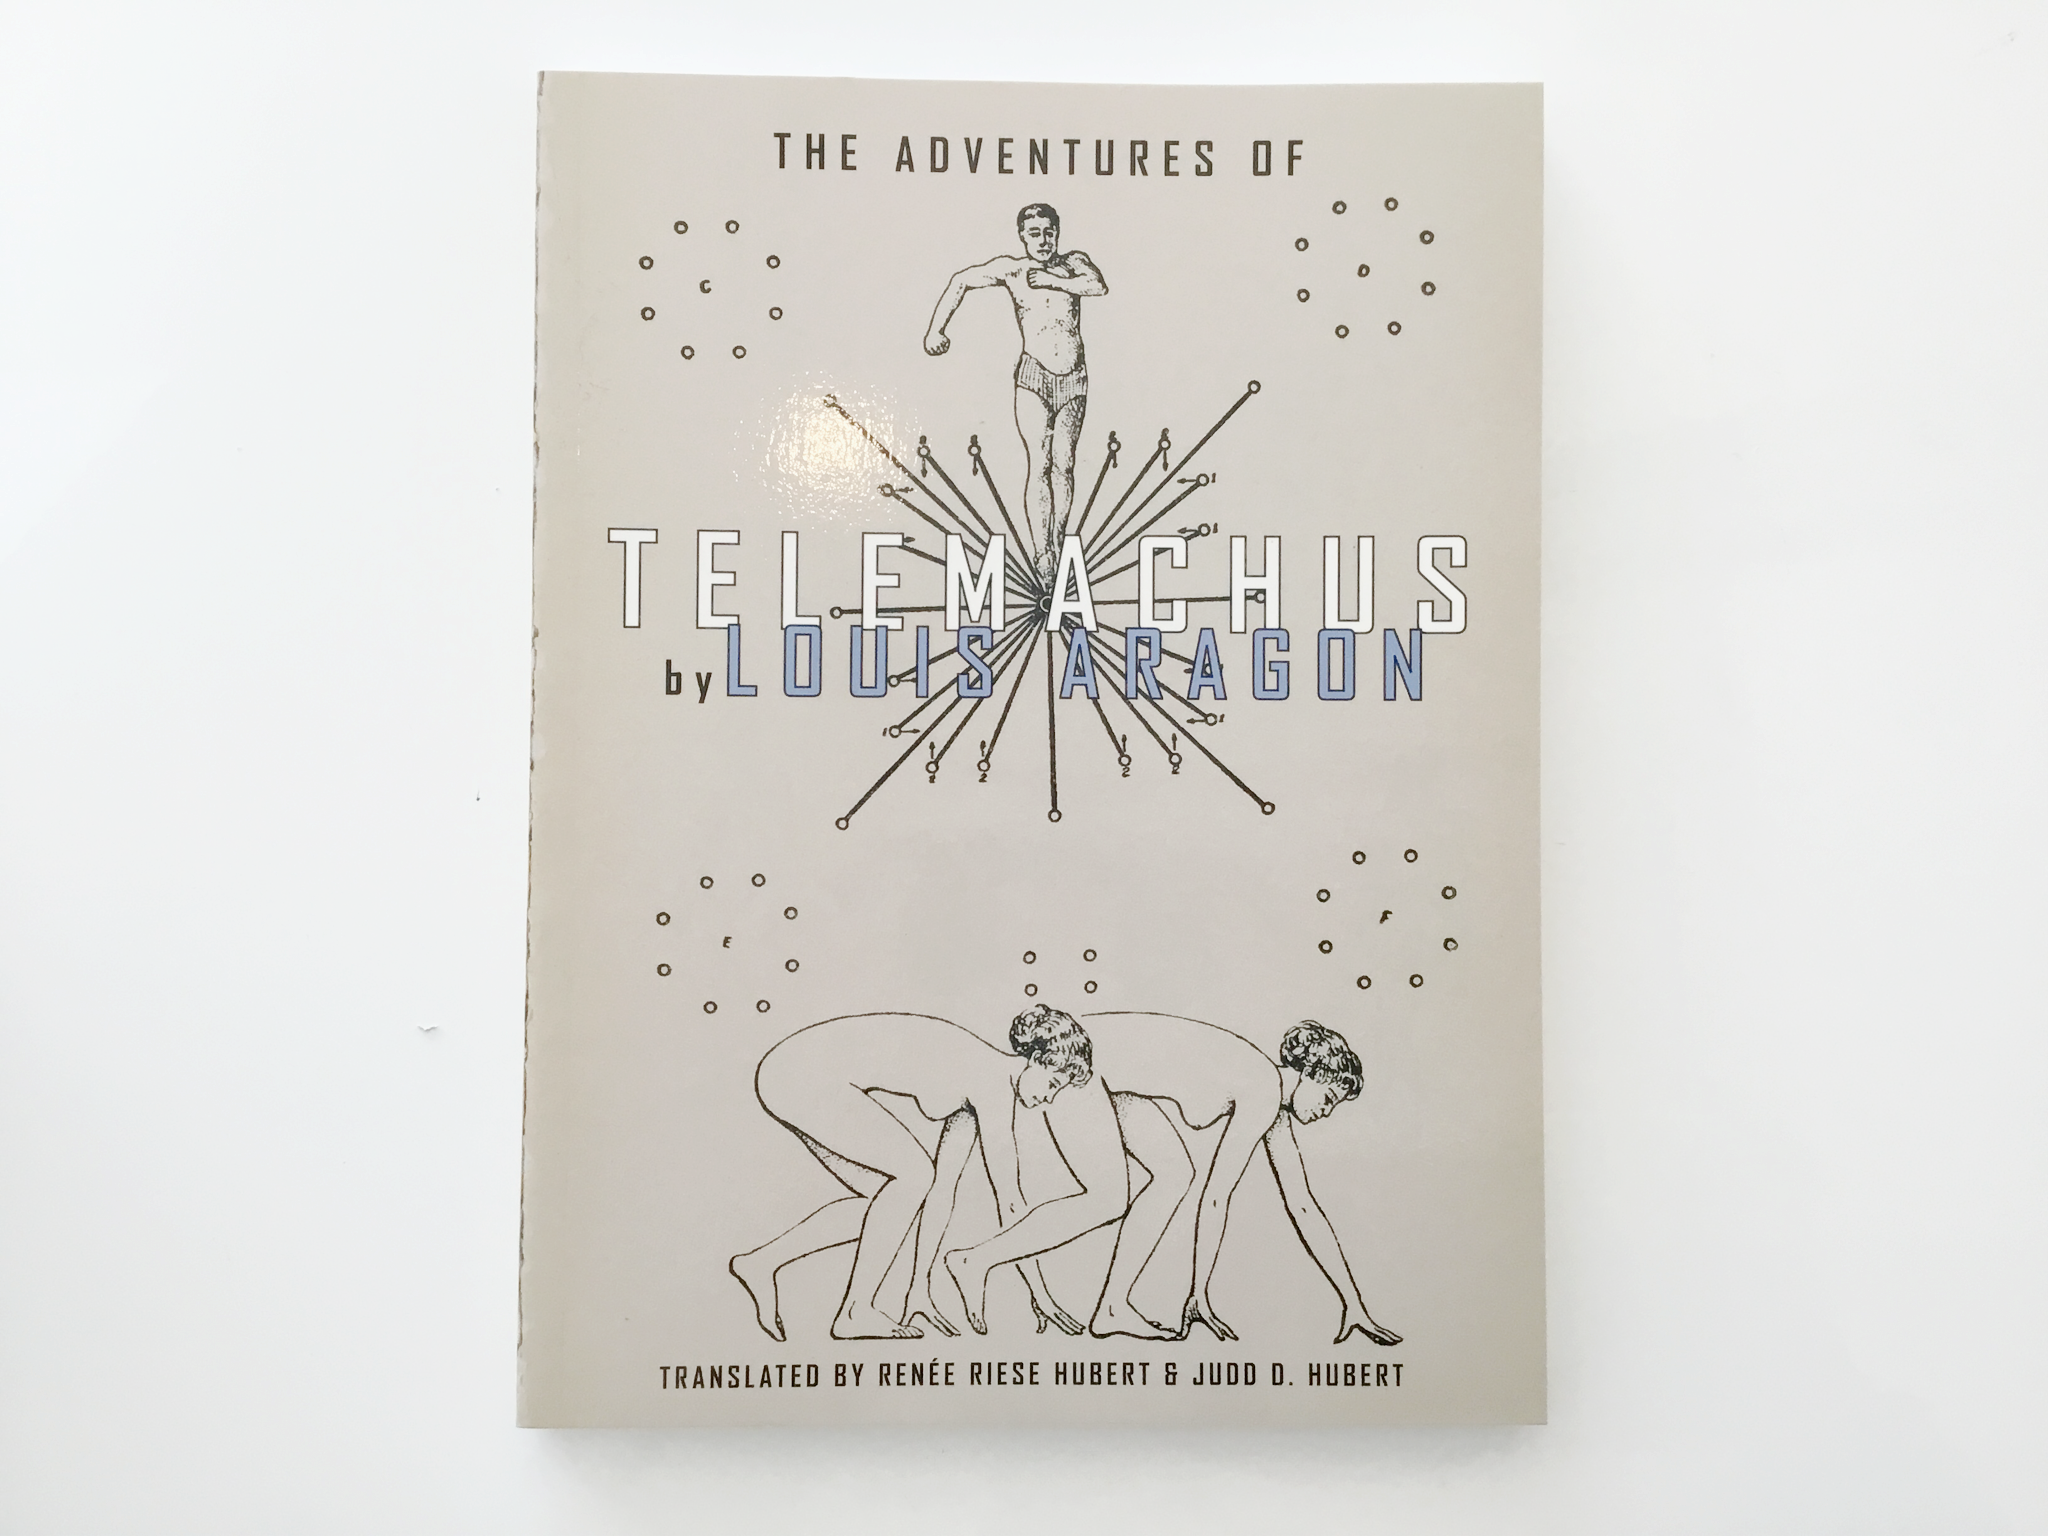 The Adventures of Telemachus by Louis Aragon